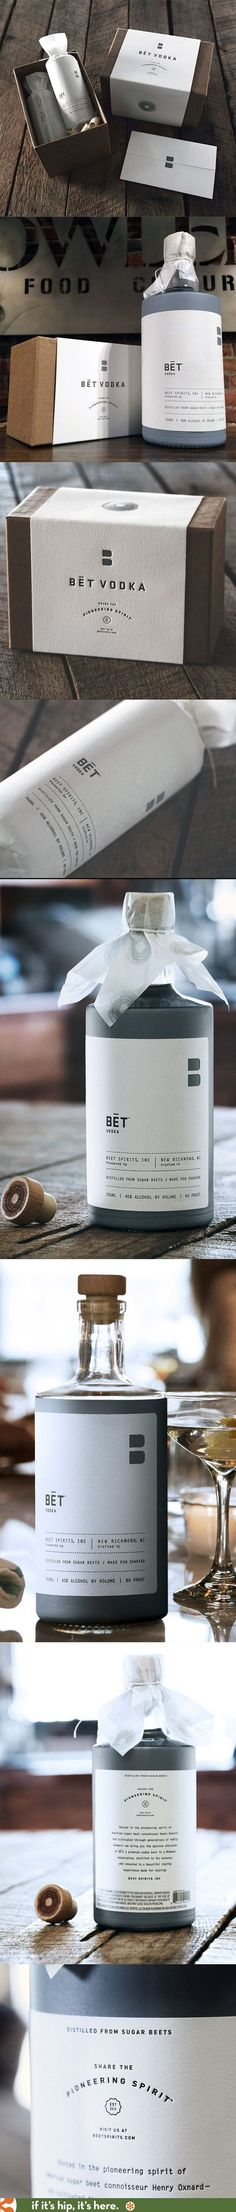 Beautiful package design and press kit for BÄ'T Vodka by Jillian Frey of KNOCK.